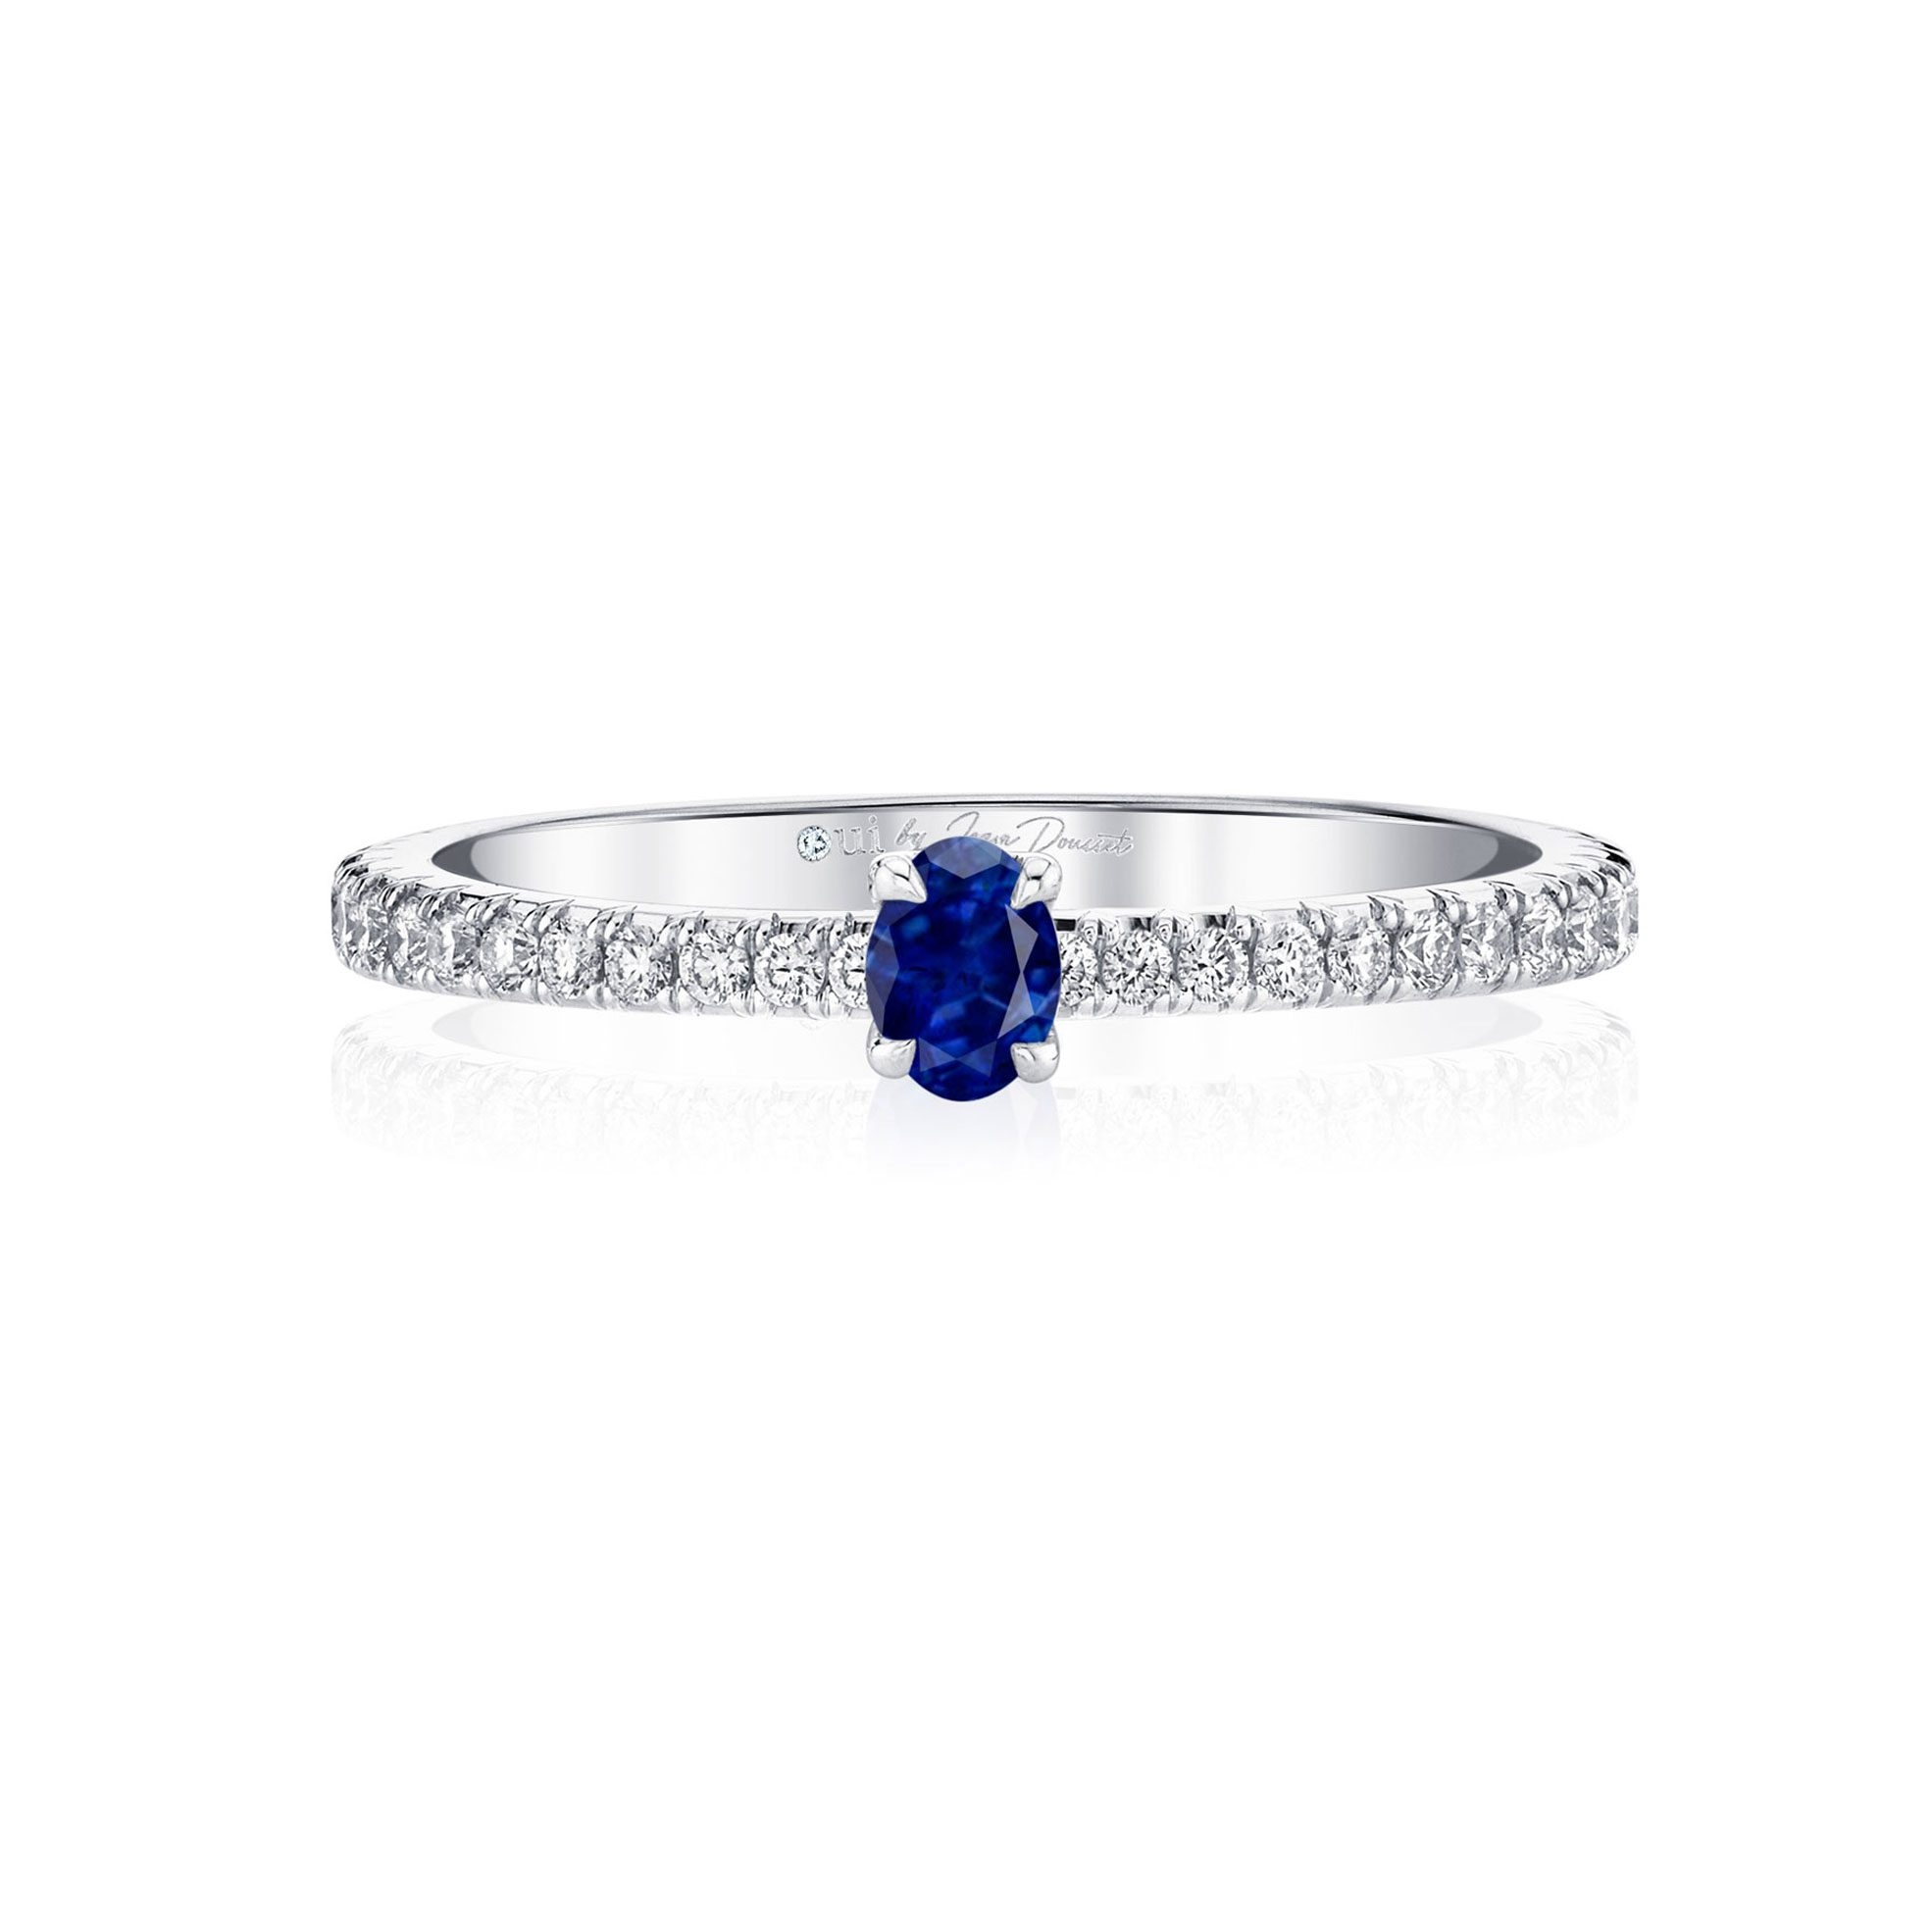 La Petite Oval Blue Sapphire Ring diamond pavé band in 18k White Gold Front View by Oui by Jean Dousset